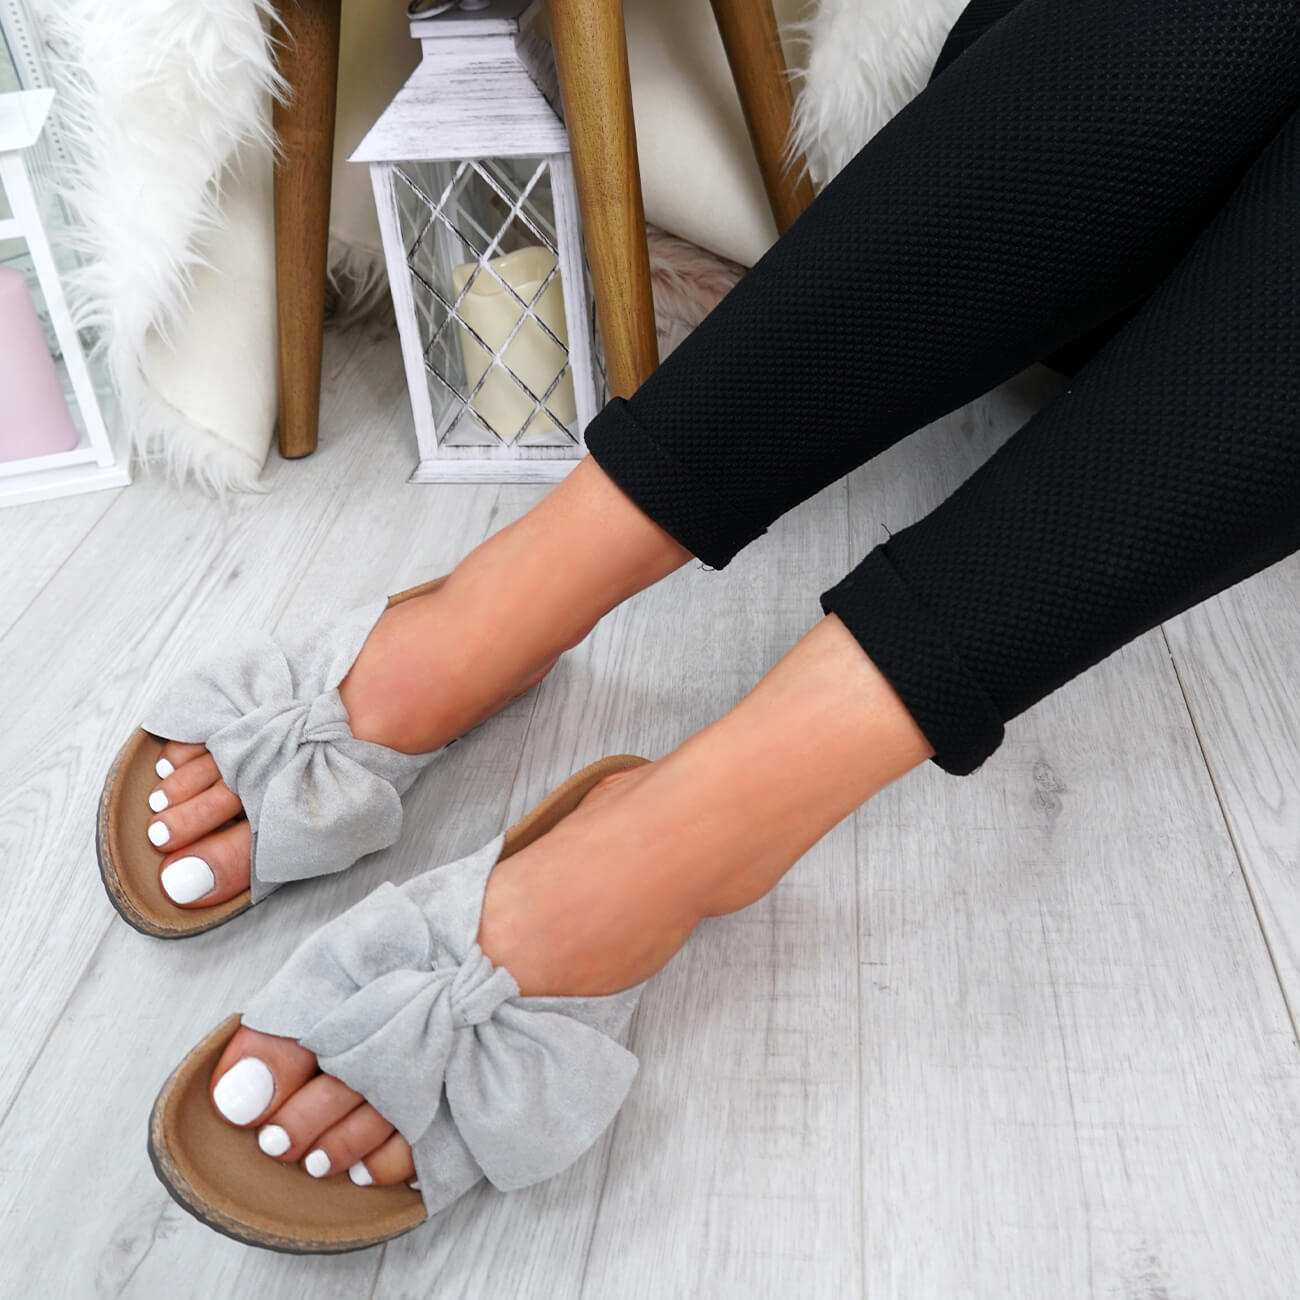 WOMENS-LADIES-SLIP-ON-FLAT-SANDALS-BOW-SLIDERS-SUMMER-CASUAL-SHOES-SIZE thumbnail 29